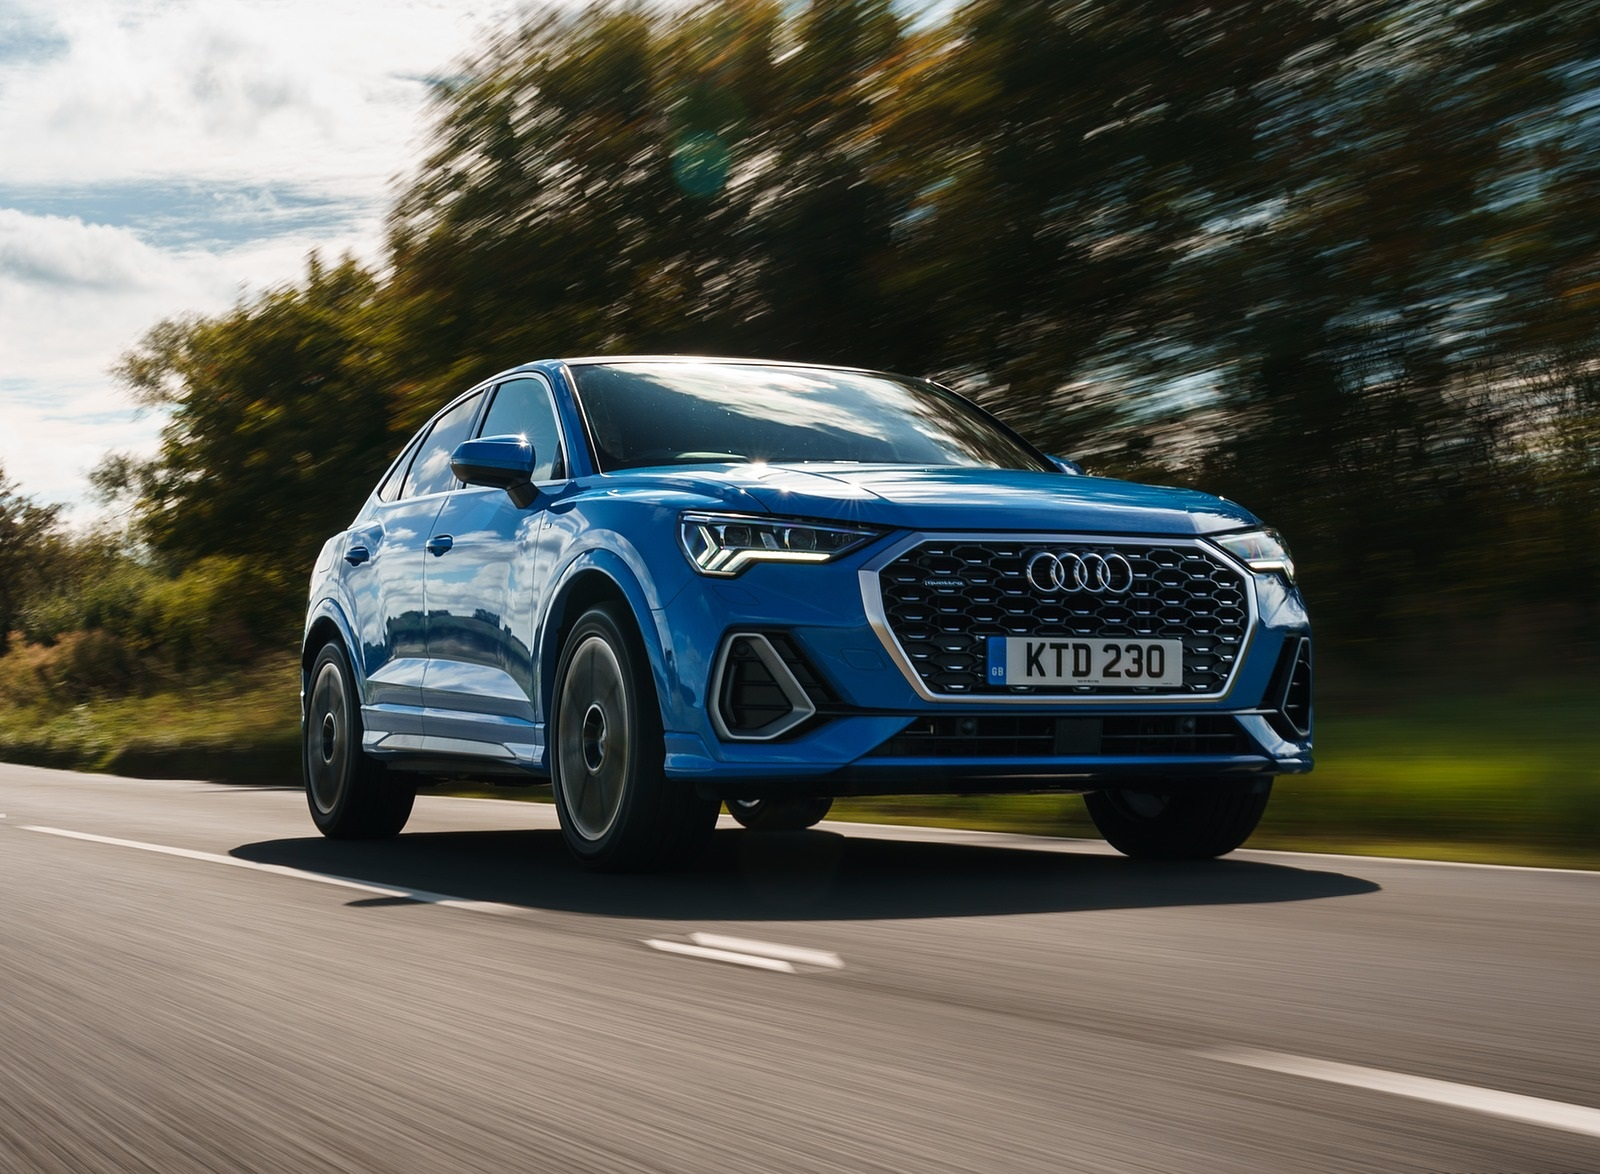 2020 Audi Q3 Sportback 45 TFSI quattro (UK-Spec) Front Three-Quarter Wallpapers (5)